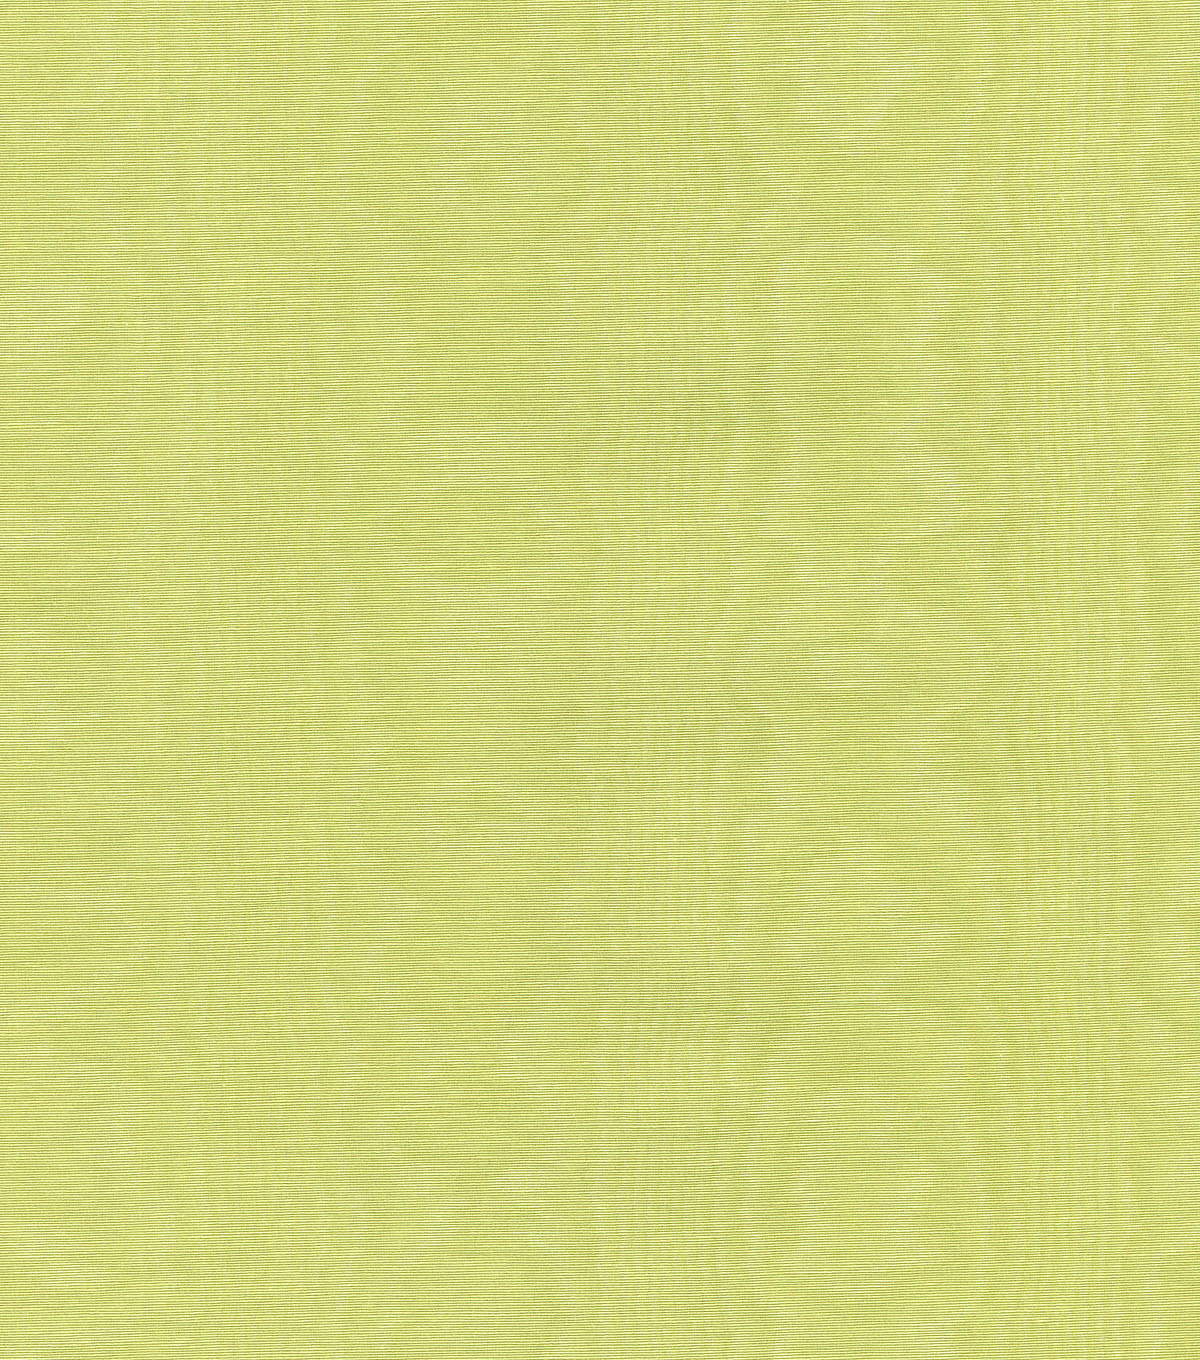 Williamsburg Solid Fabric 54\u0022-Palace Moire/Citron